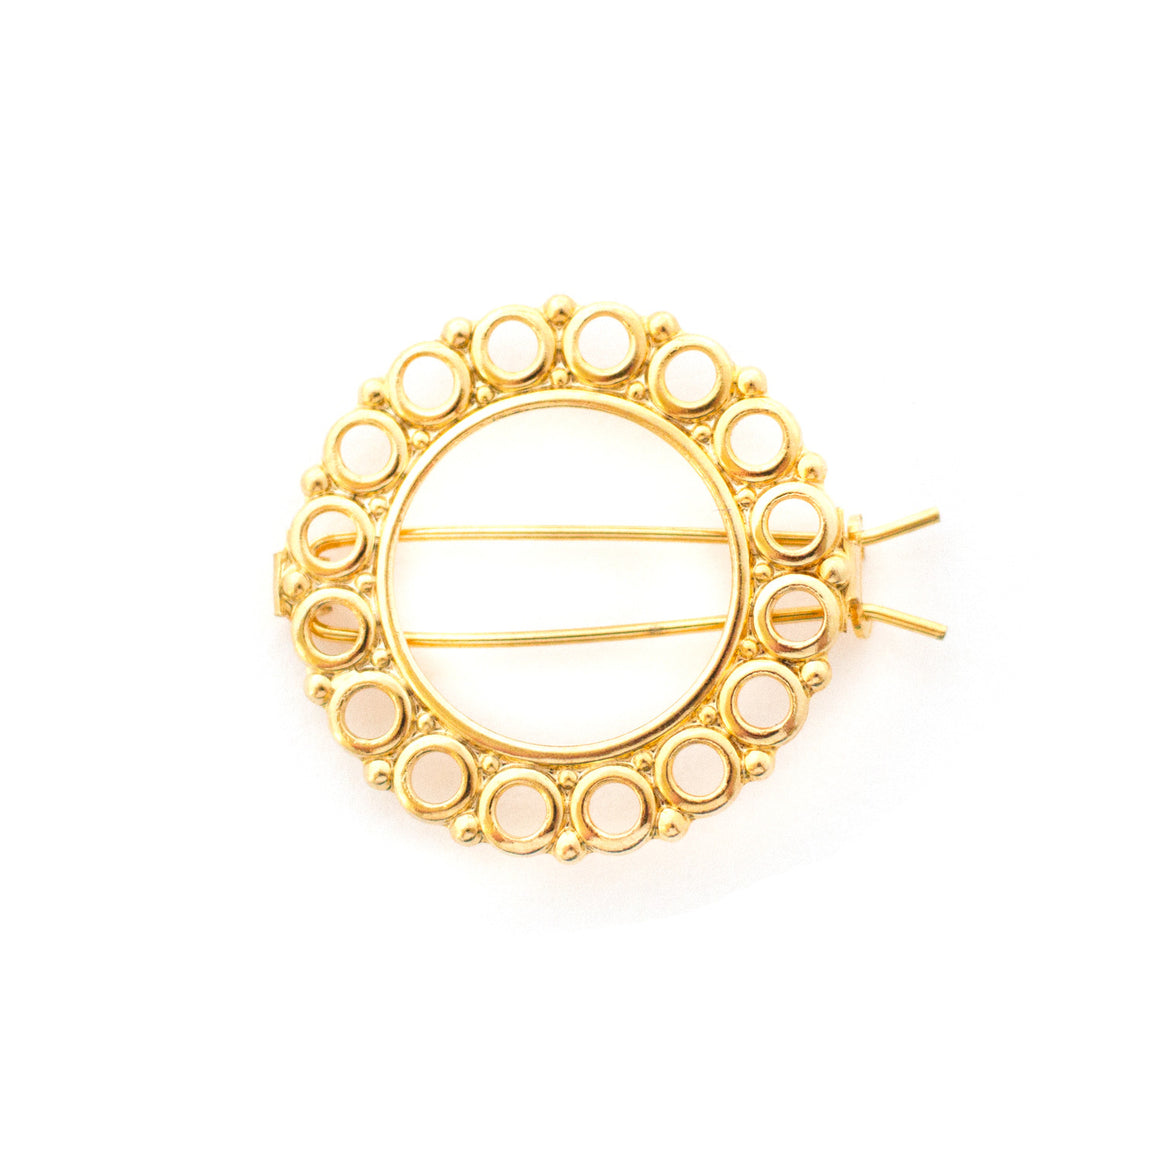 gold circle hair clip - barrette made in france - gold fill